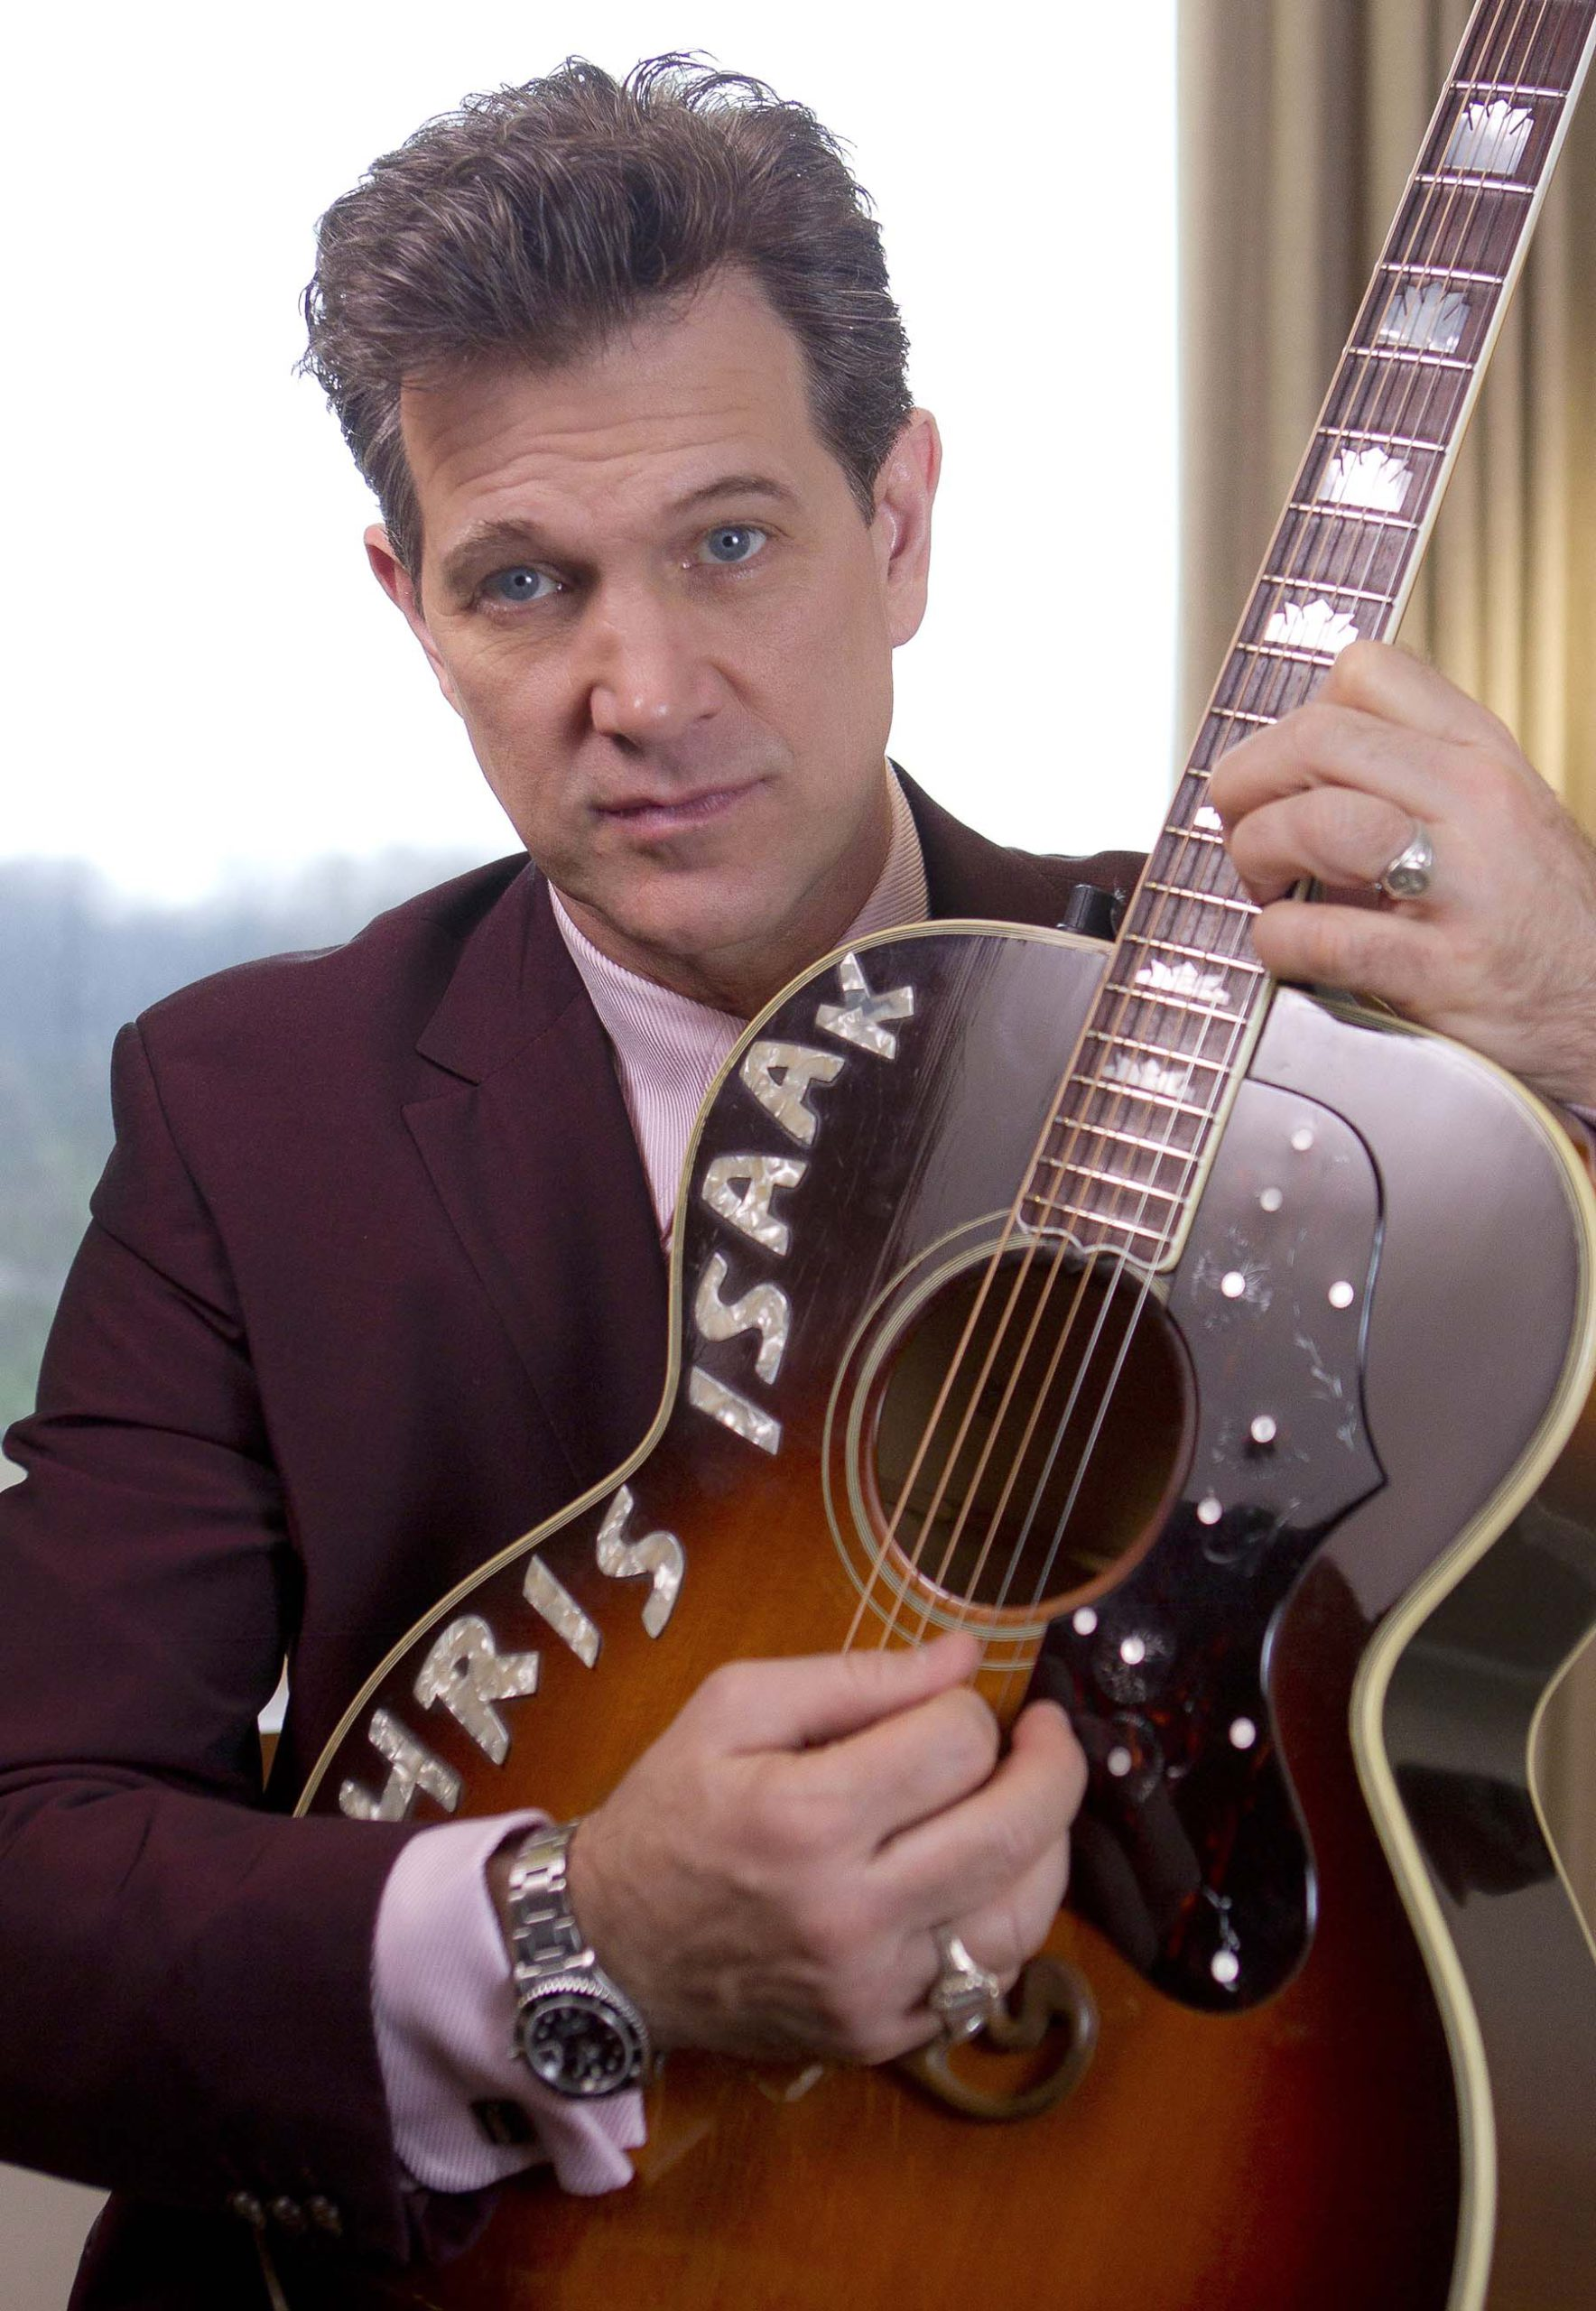 The 64-year old son of father (?) and mother(?) Chris Isaak in 2021 photo. Chris Isaak earned a  million dollar salary - leaving the net worth at  million in 2021